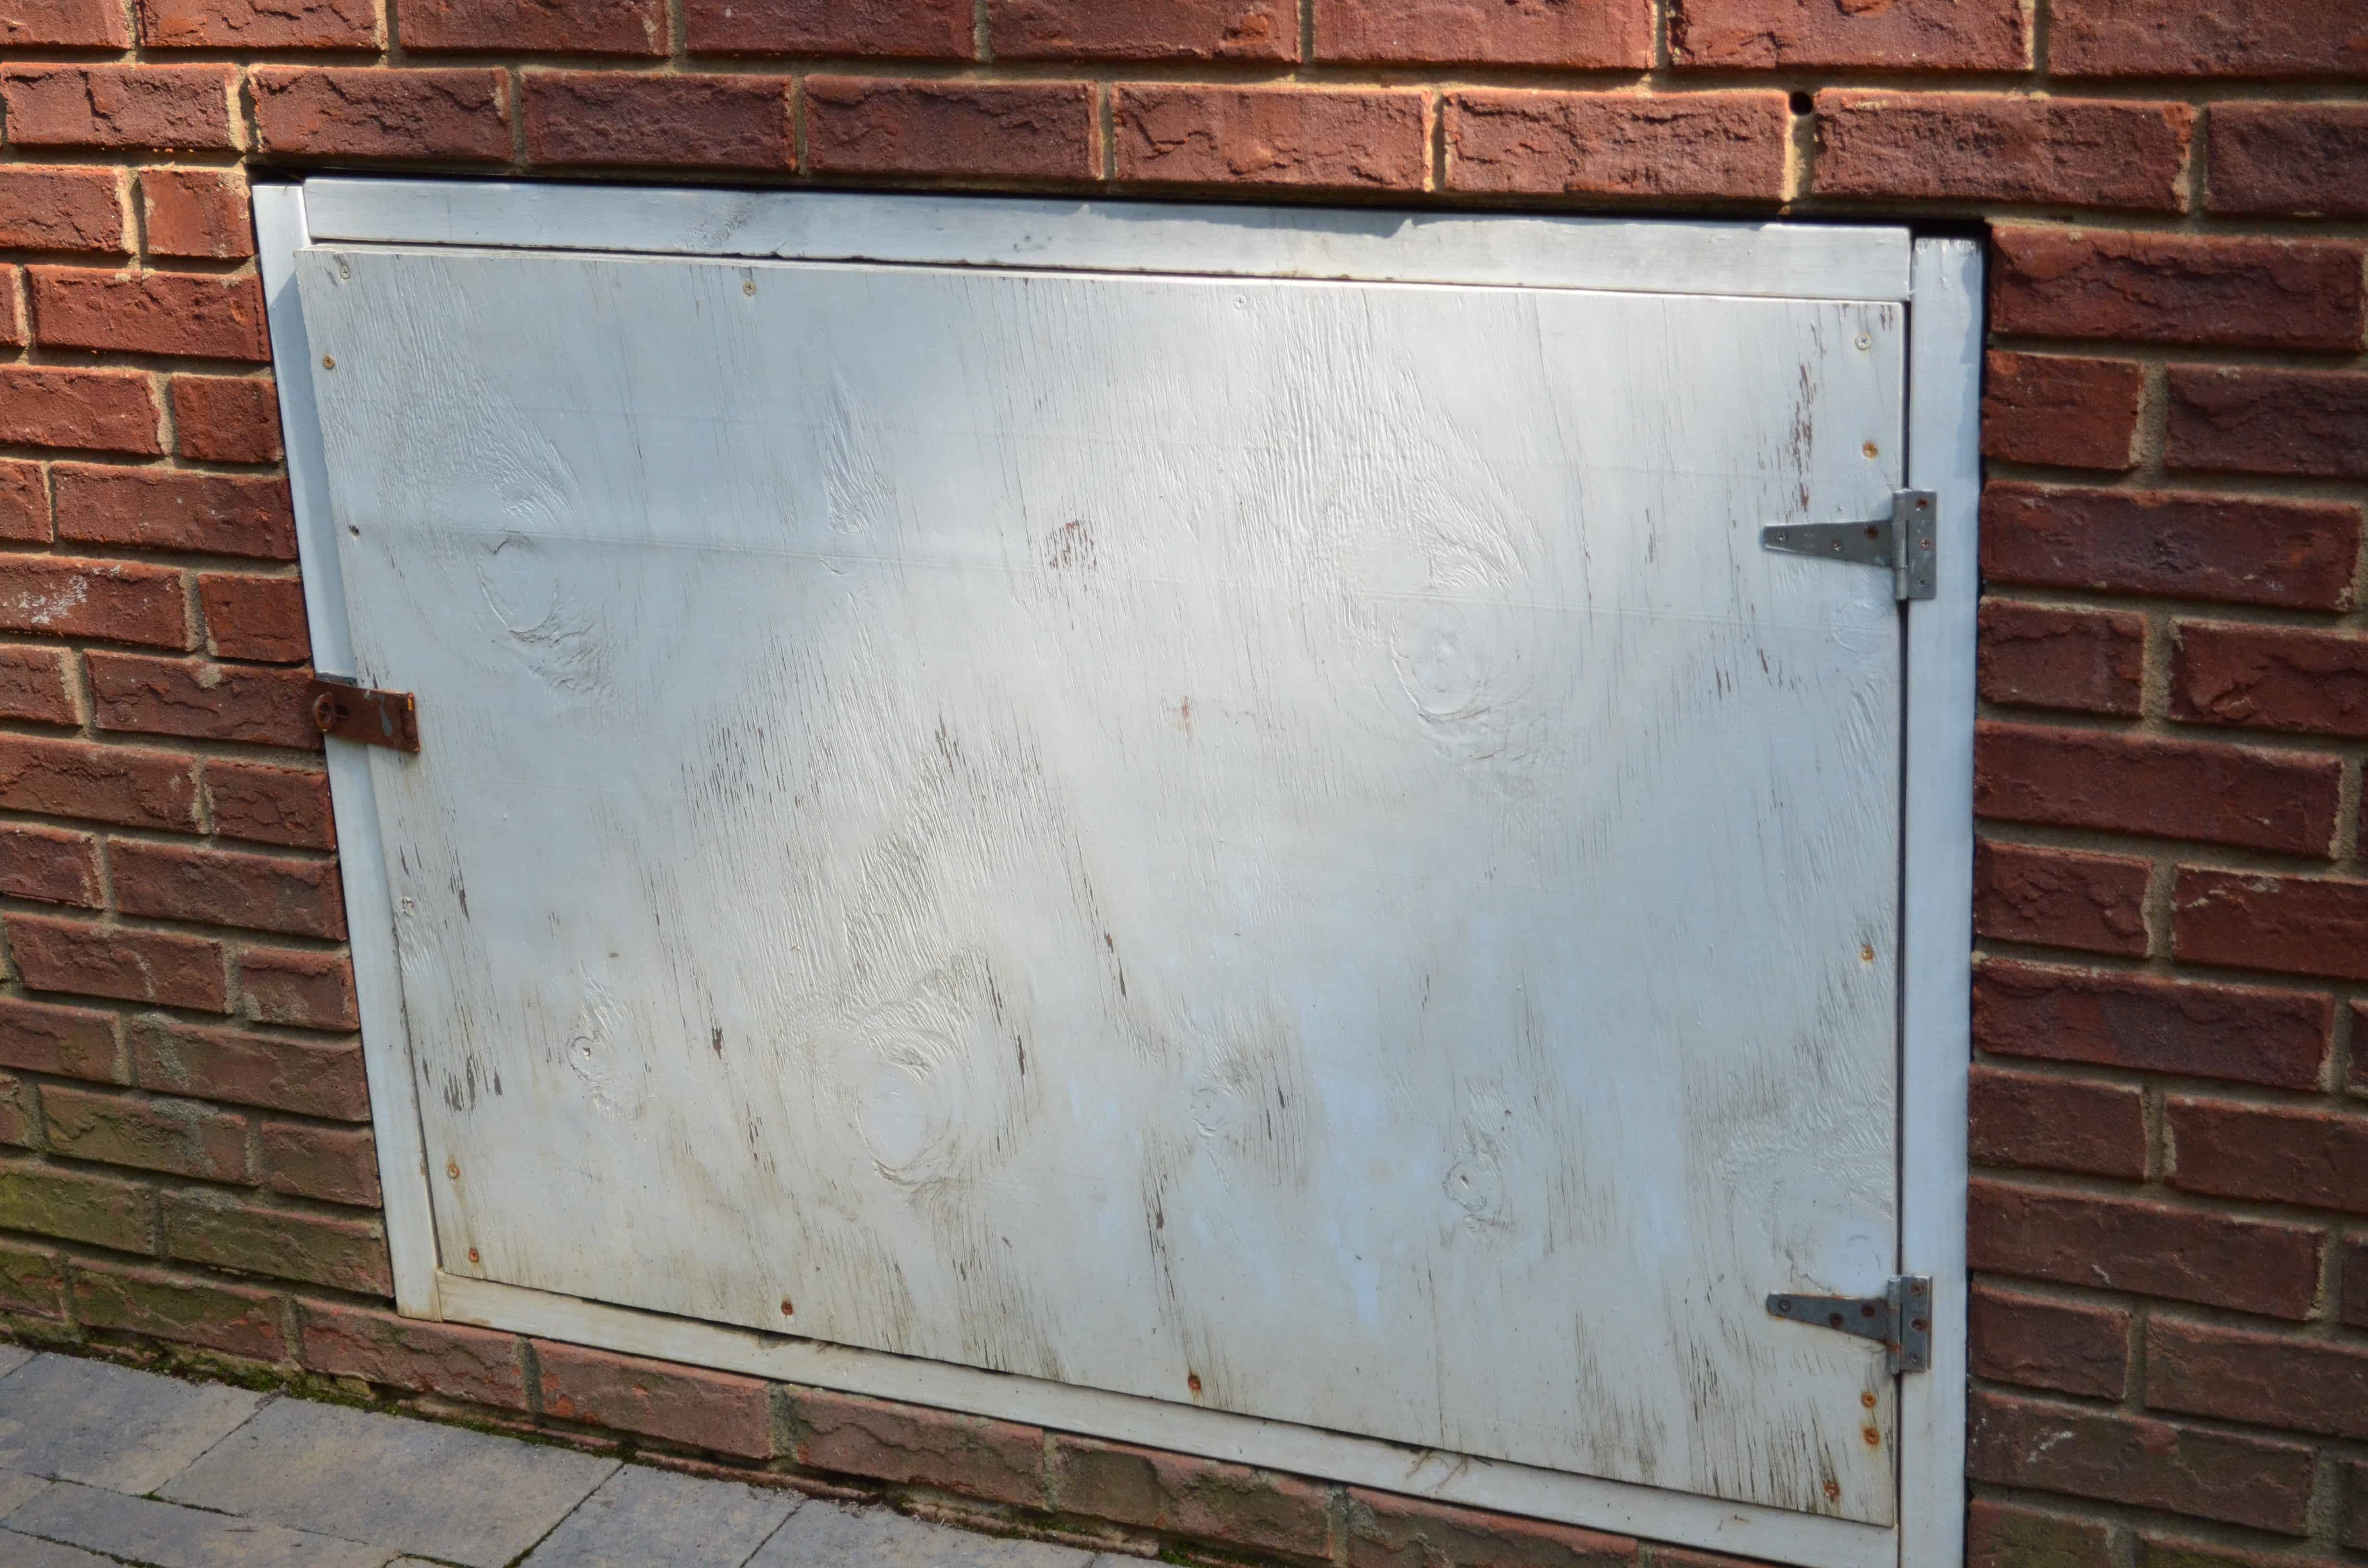 Crawl Space Door Before At Home With The Barkers